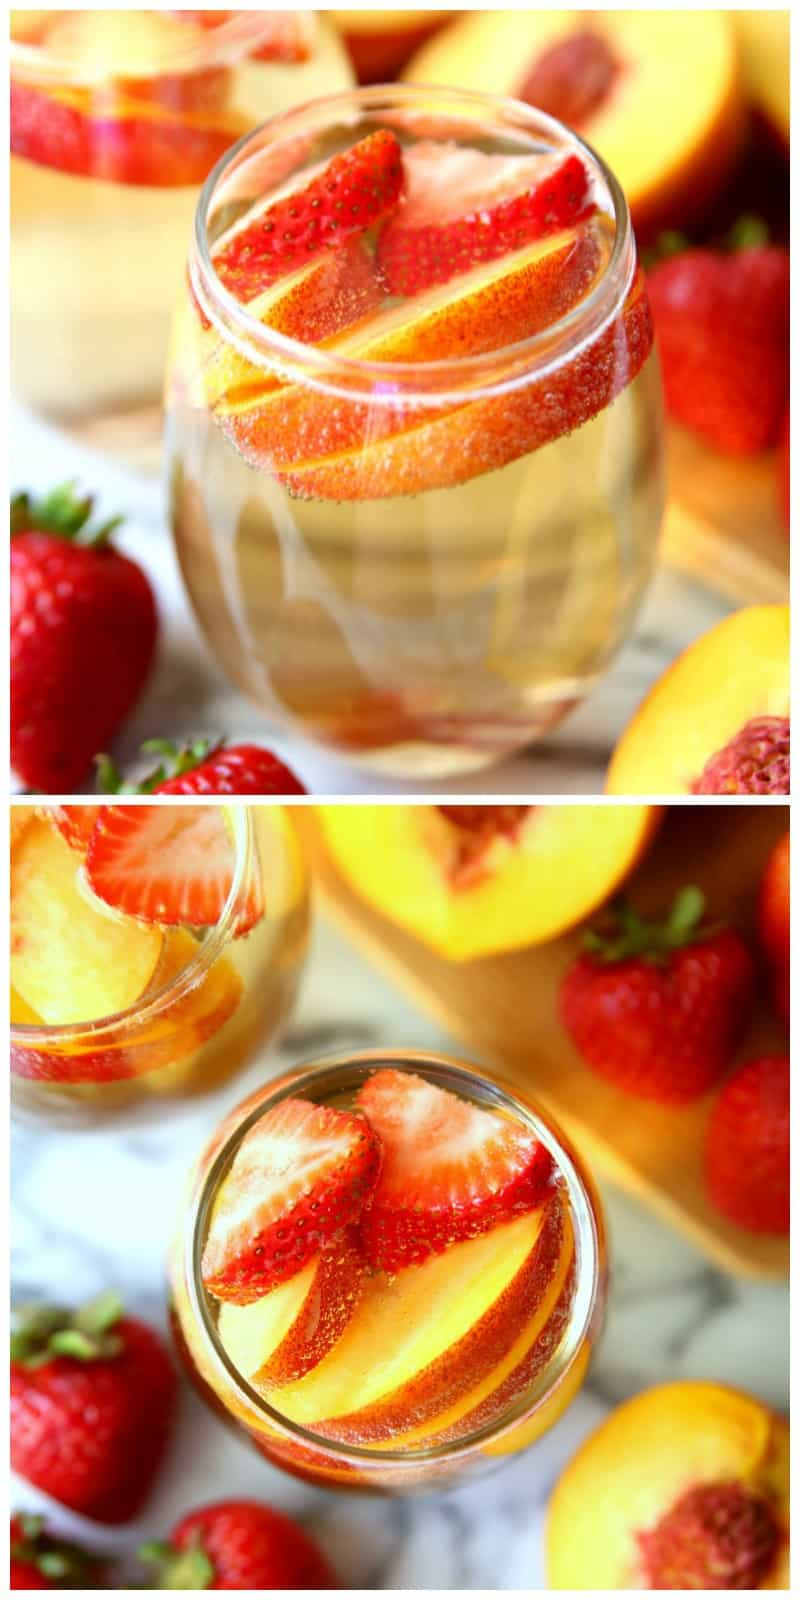 Looking for a delicious summer cocktail punch to serve this summer?  Then, you're going to love this Peach Champagne Punch!   It's full of peaches and champagne - everything a summer cocktail needs.